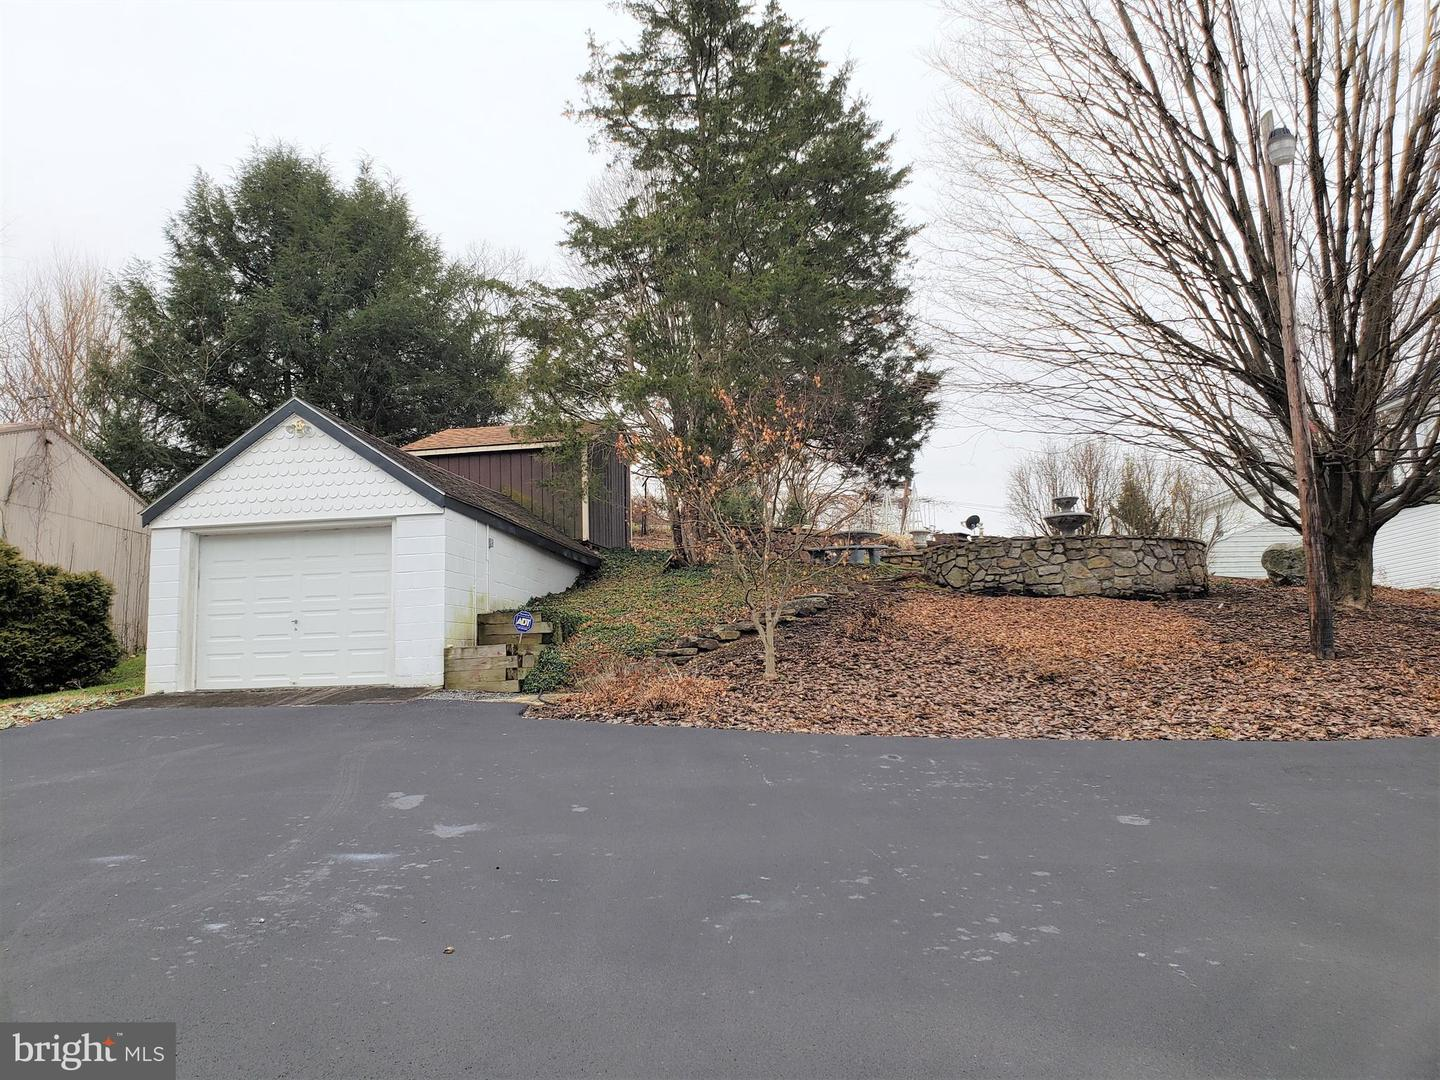 Additional photo for property listing at 34 Greenway Dr Berkeley Springs, West Virginia 25411 United States